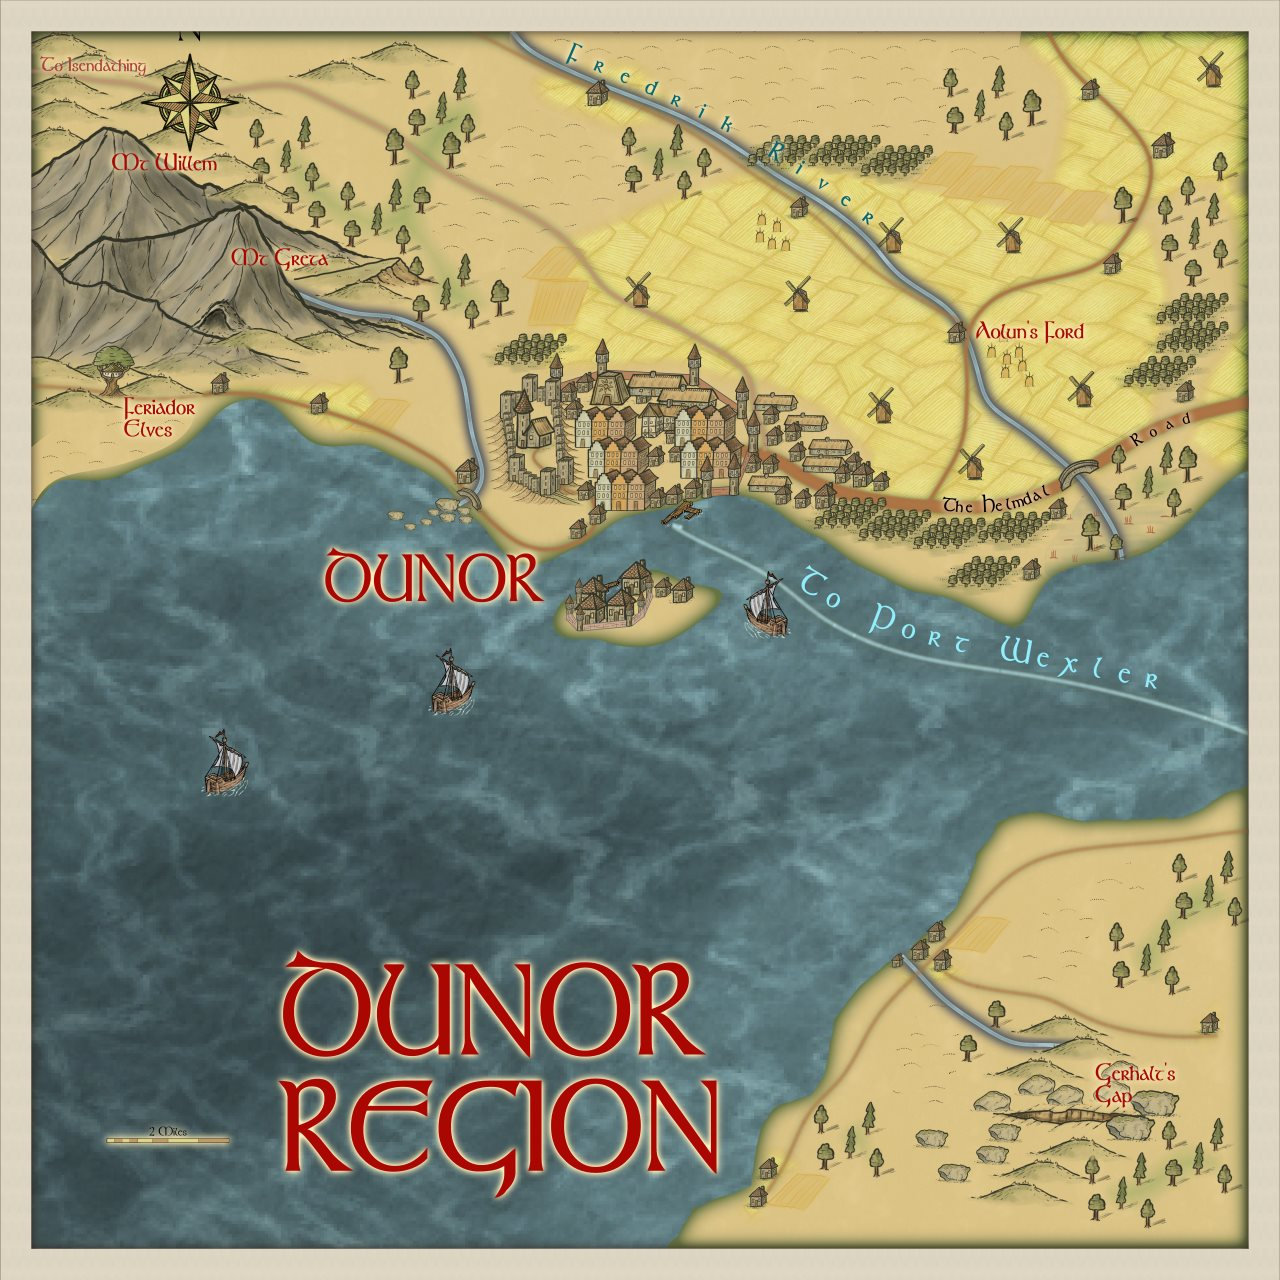 Nibirum Map: dunor region by Quenten Walker